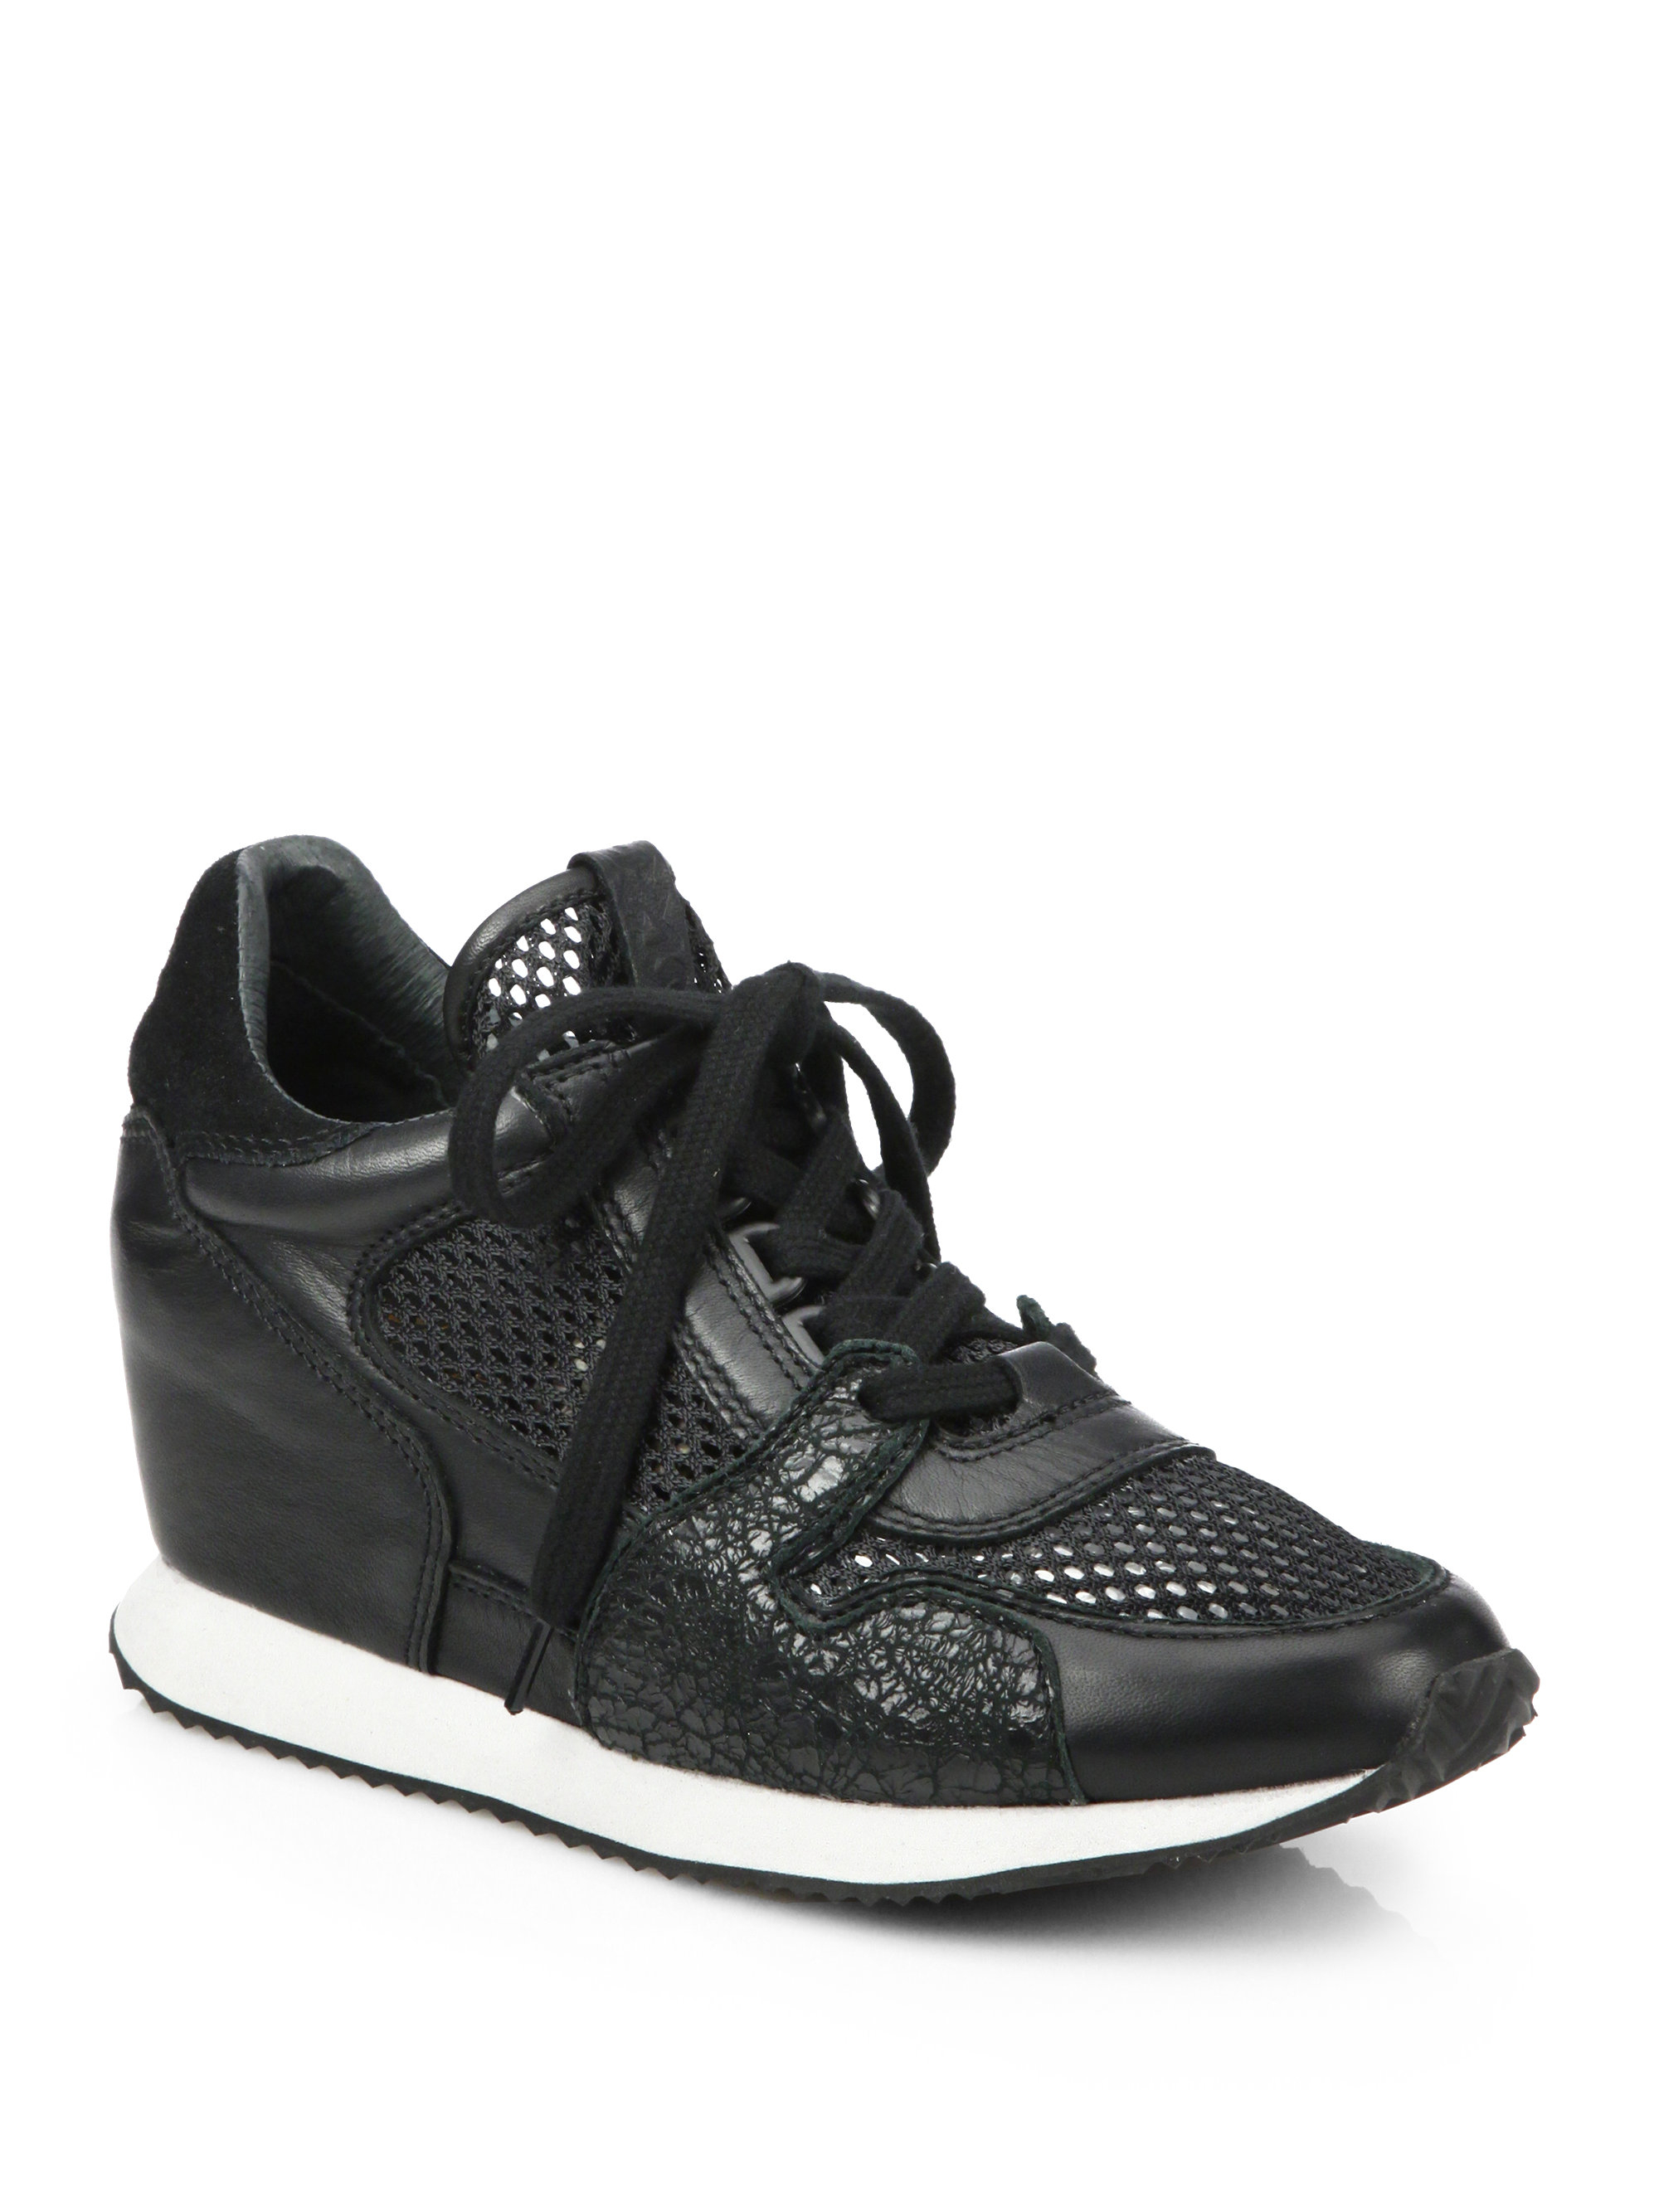 4b70a93750d Gallery. Previously sold at  Saks Fifth Avenue · Women s Wedge Sneakers  Women s Ash ...